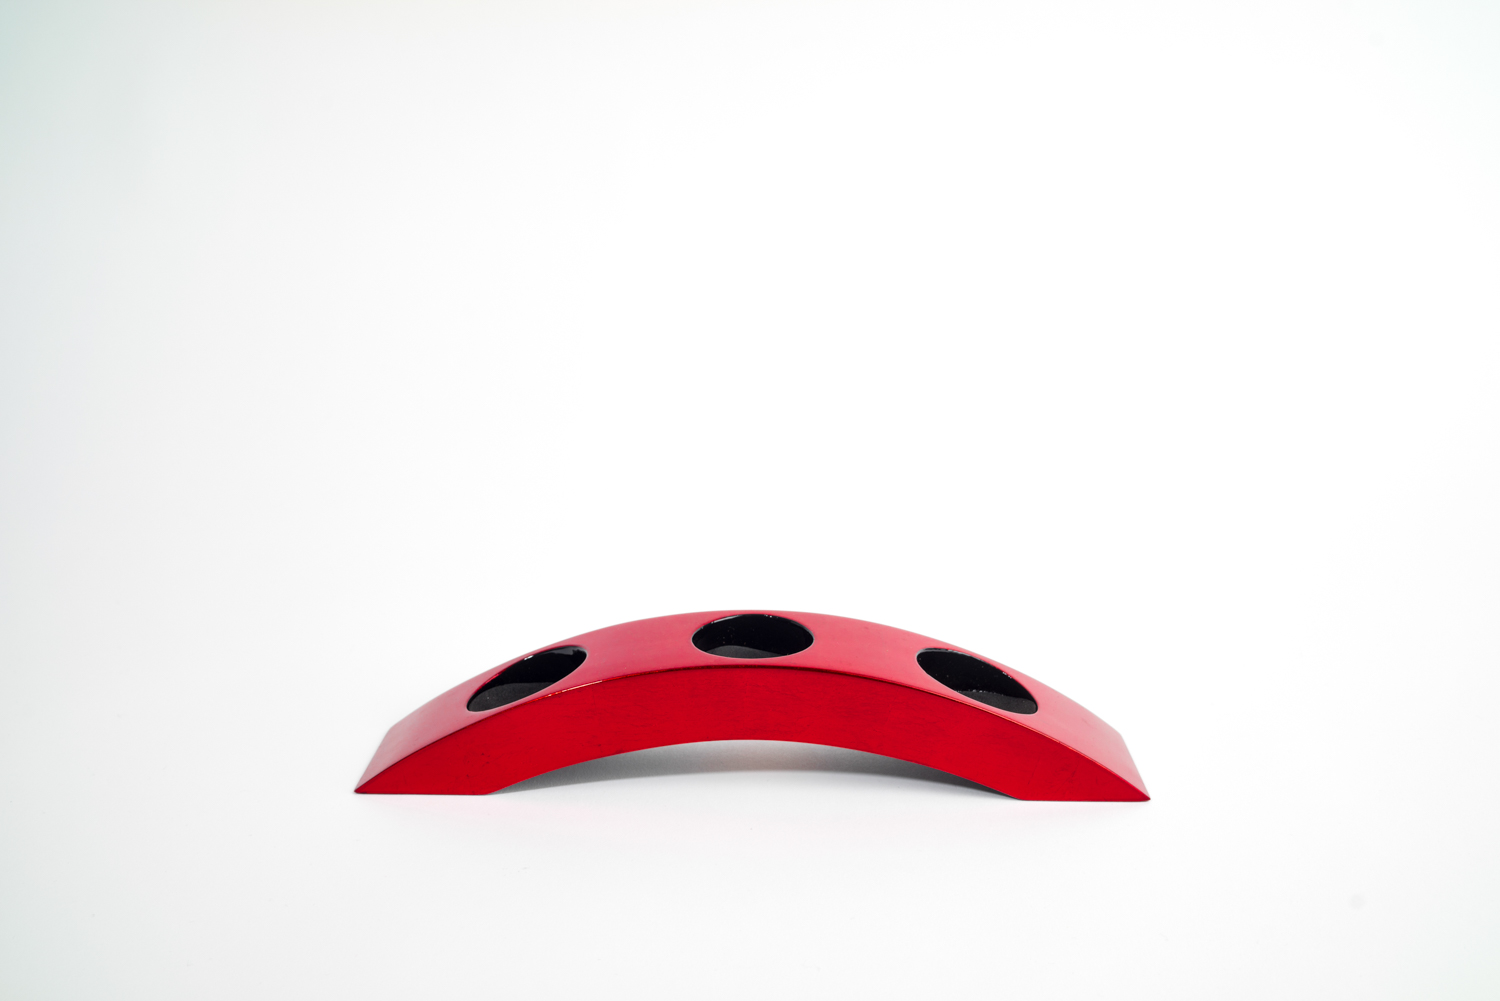 Metallic red wooden lacquer tealight holder in bridge 3 design.